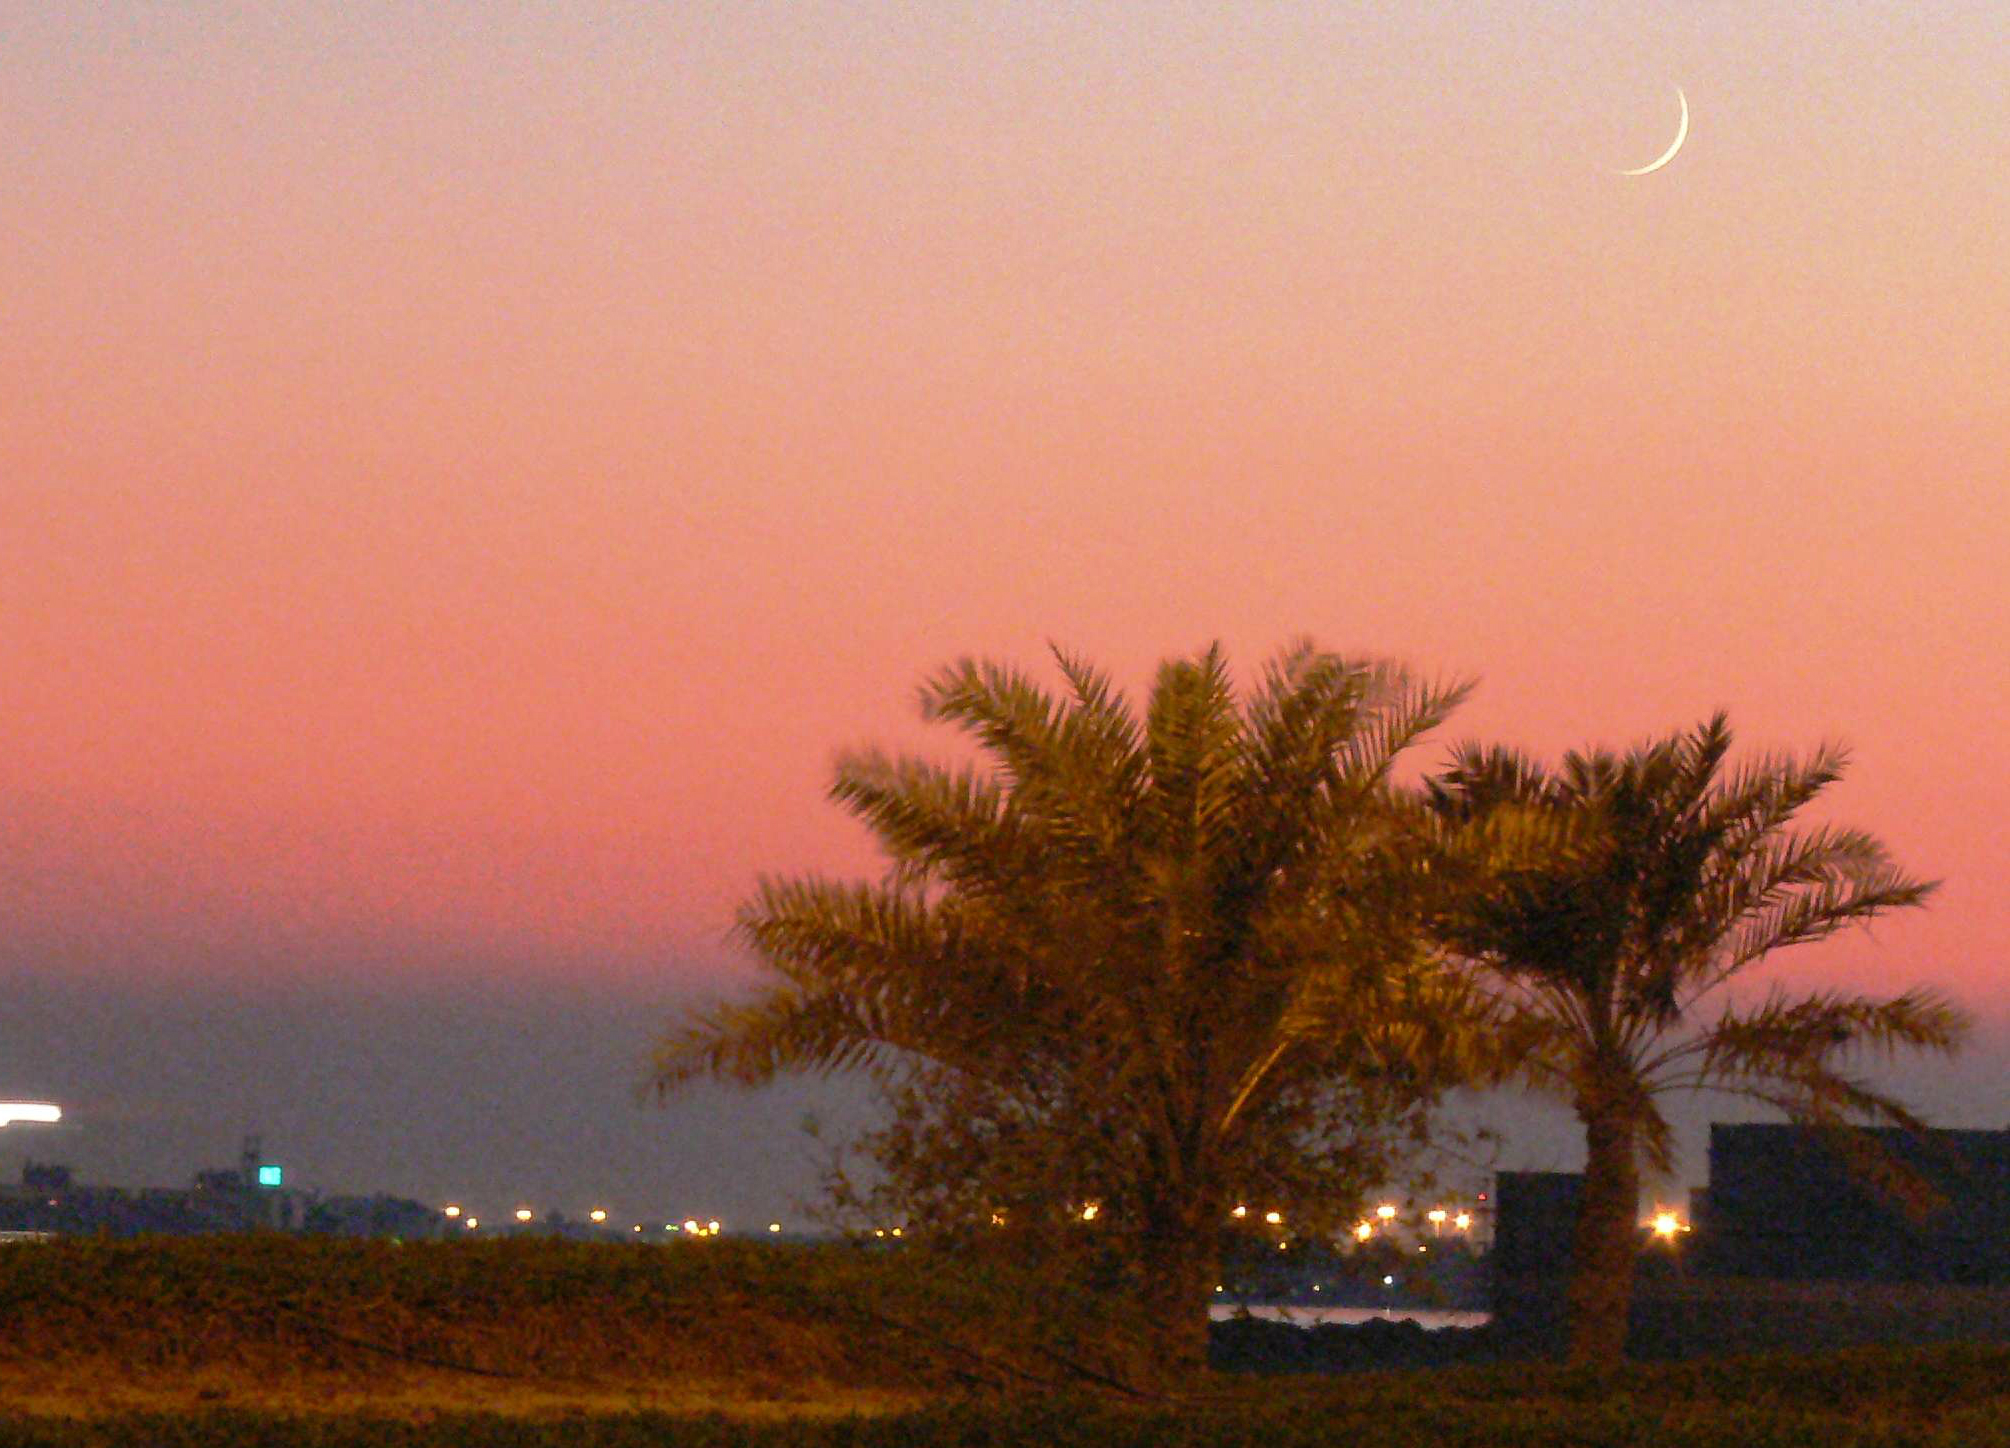 A crescent moon at sunset in Manama